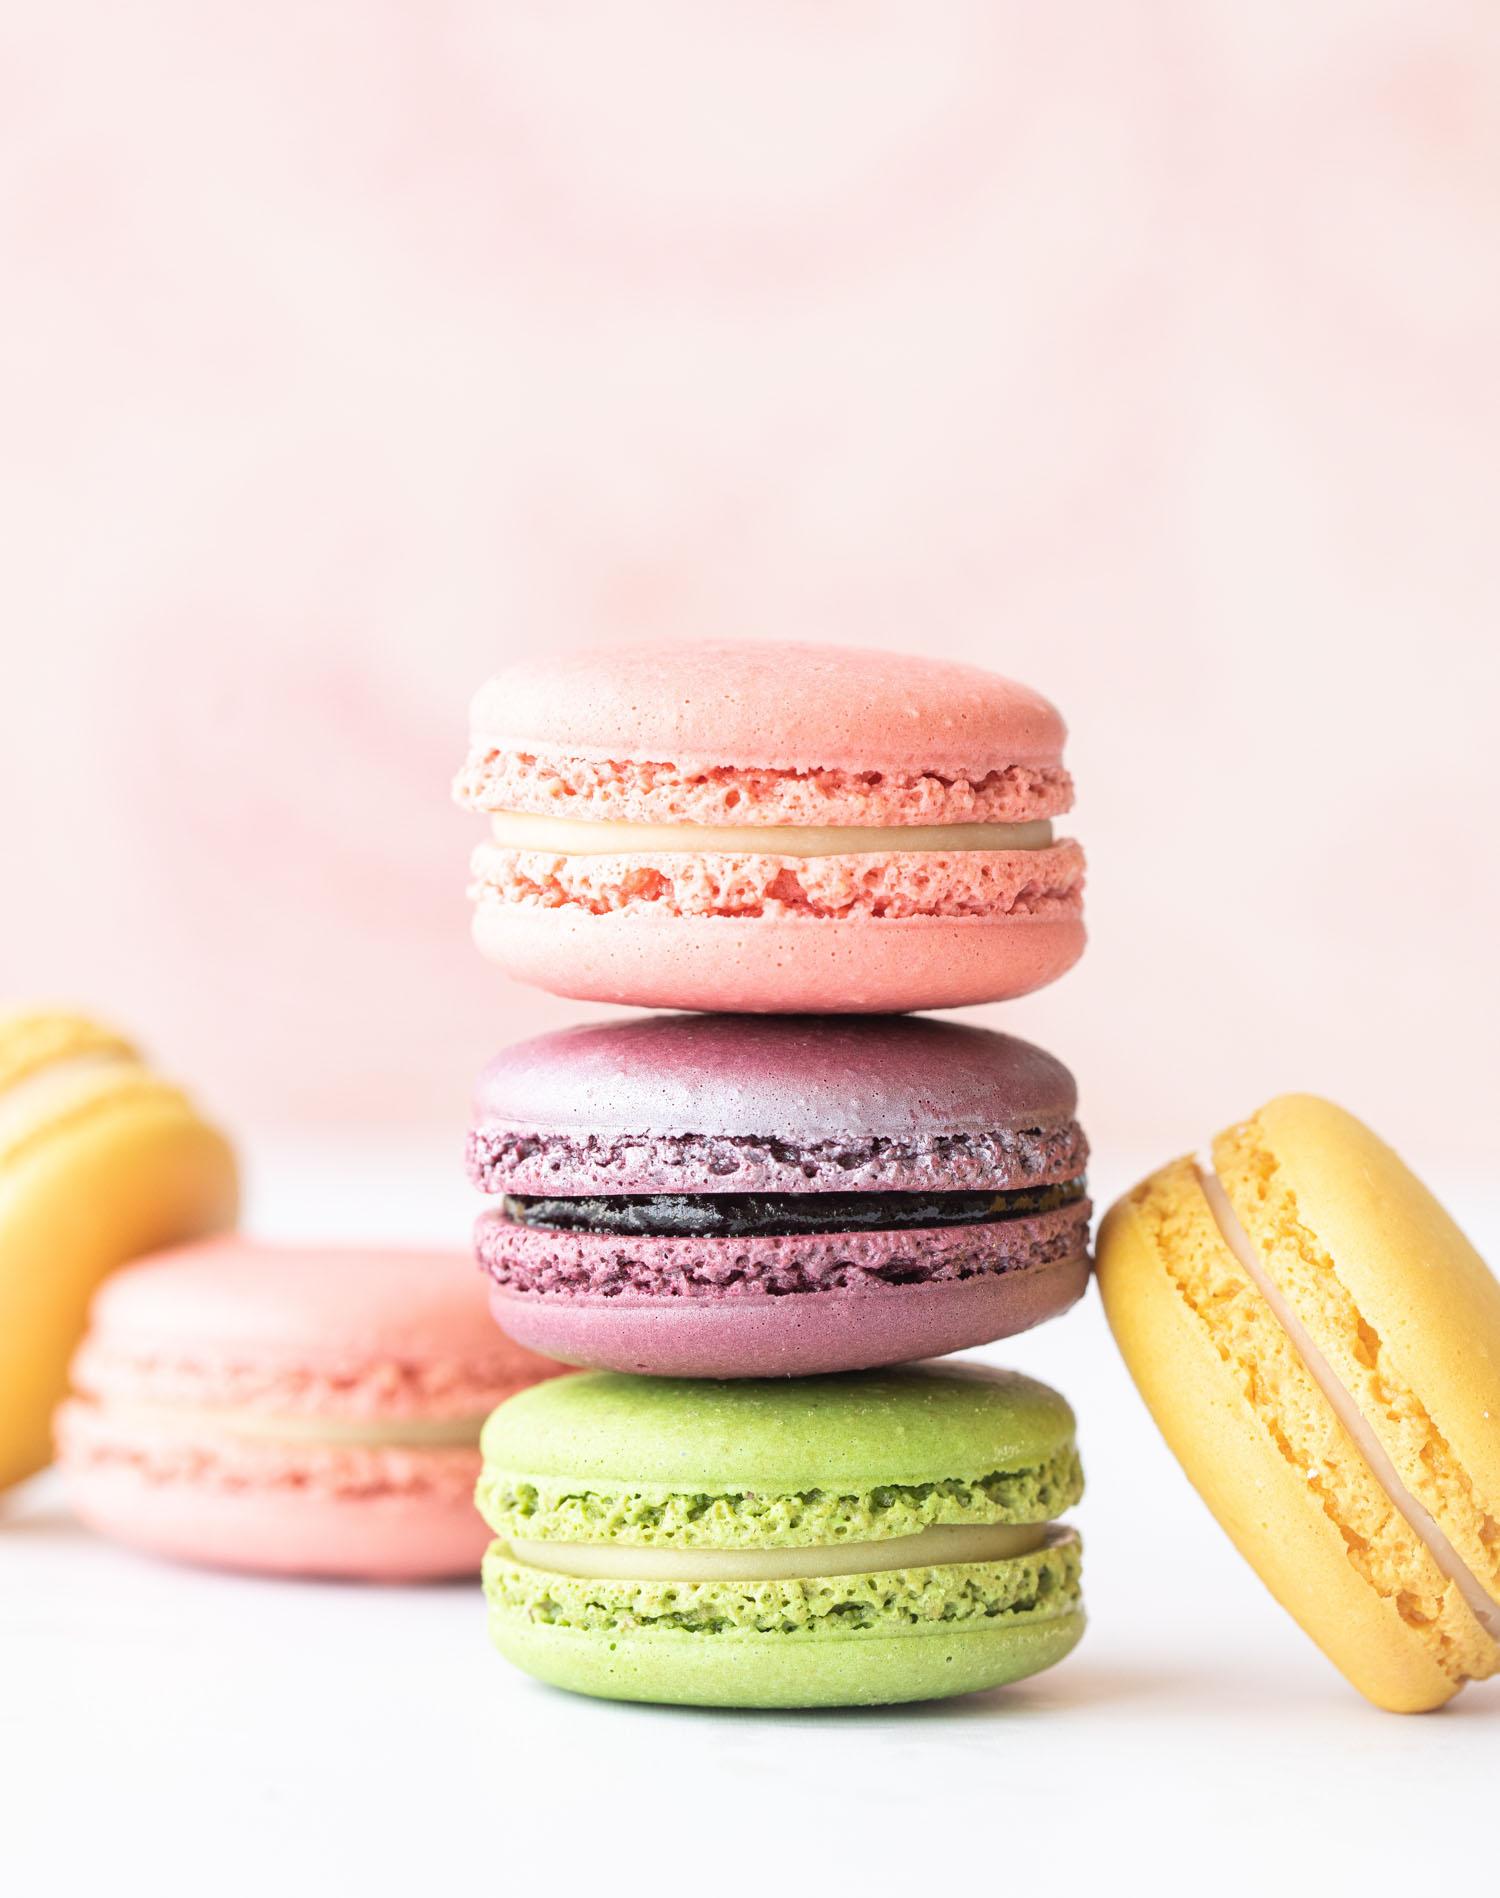 stack of French macarons on pink background